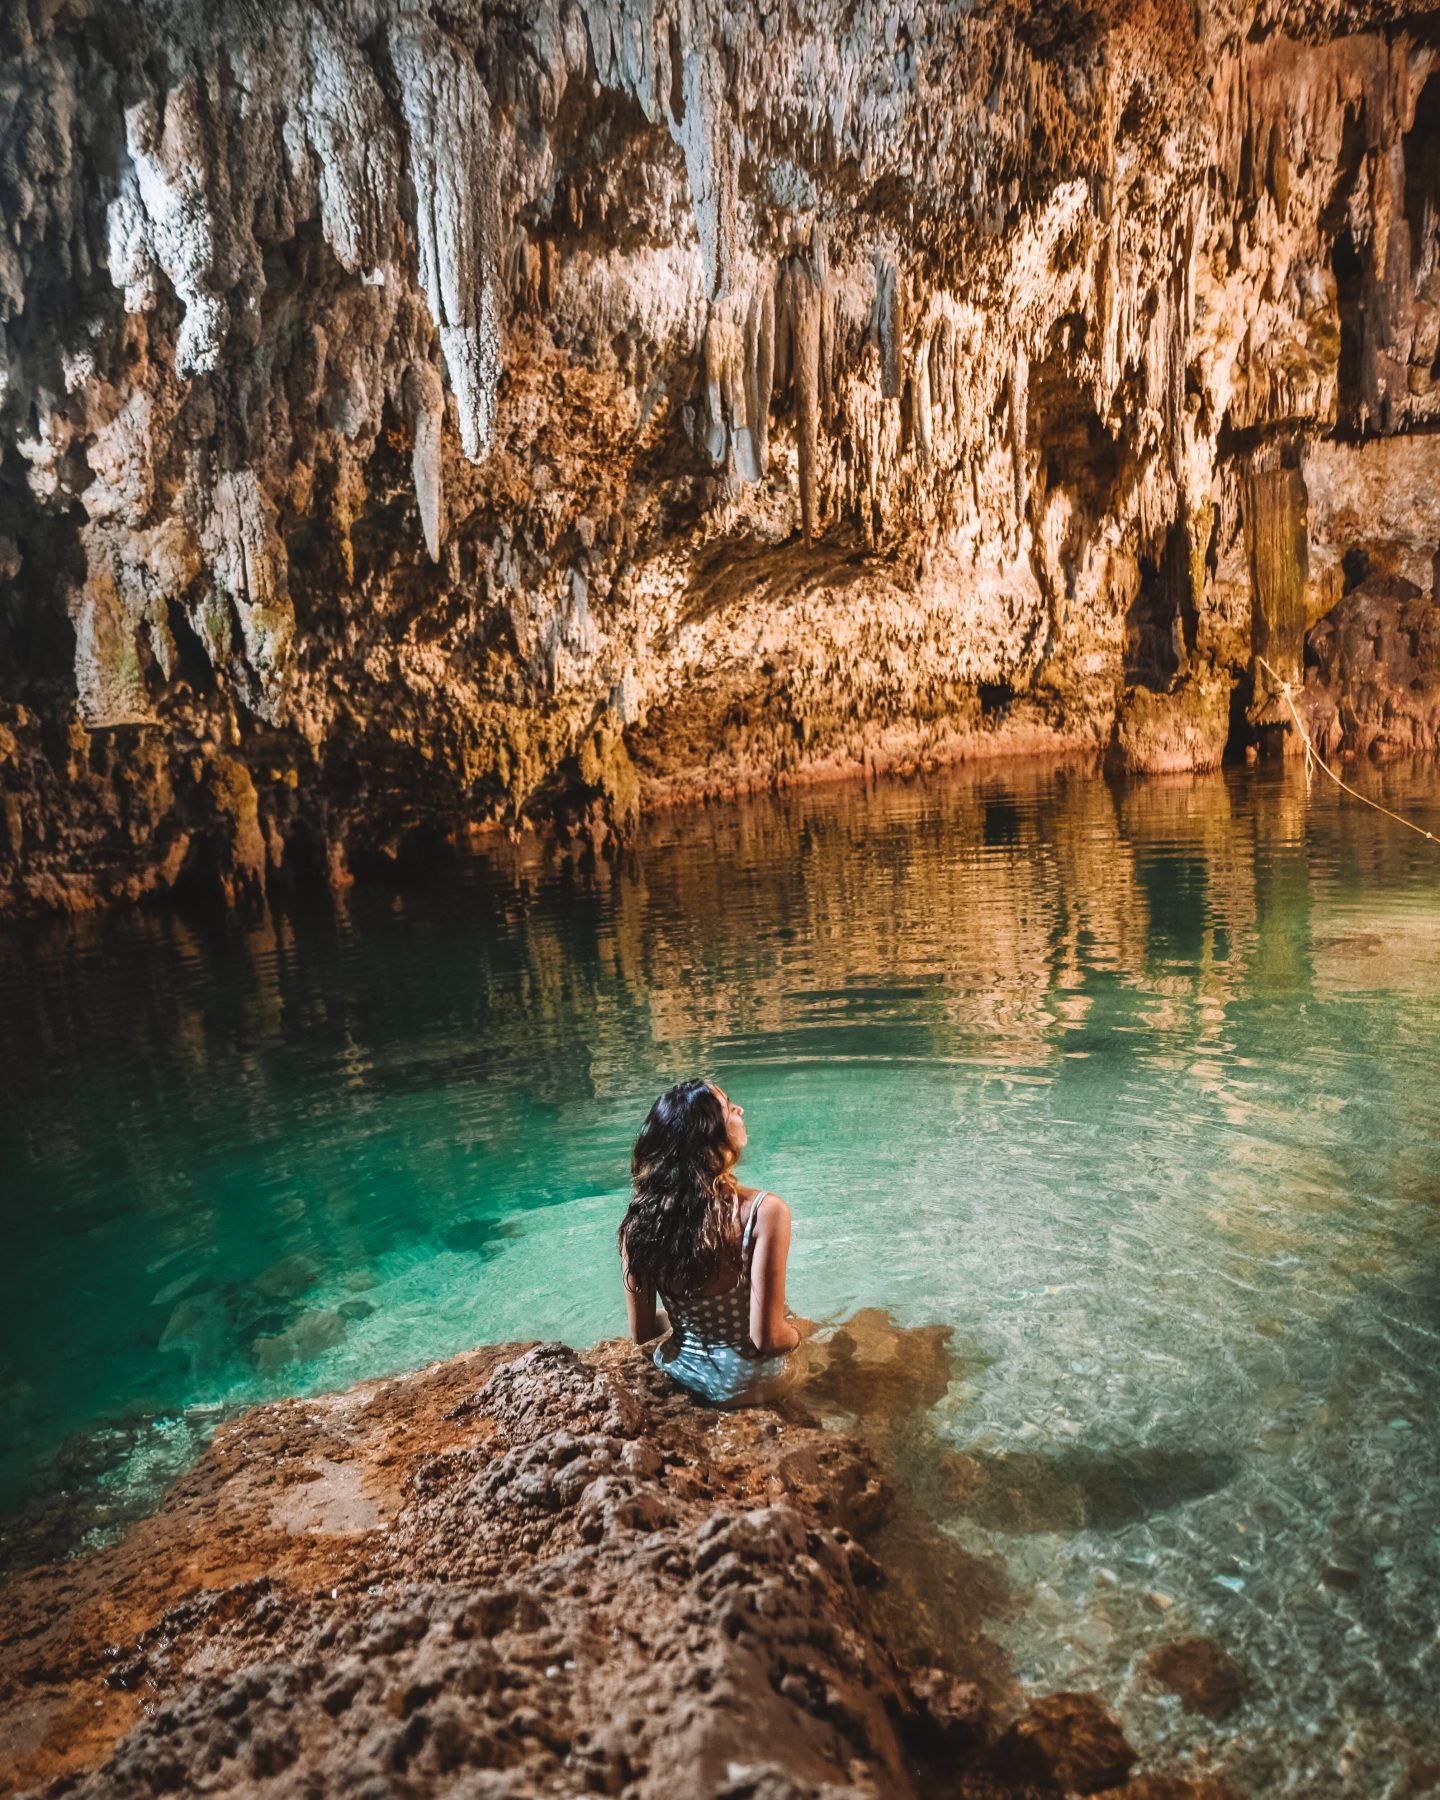 tulum is on the best destinations for solo female travelers - cenote choo ha